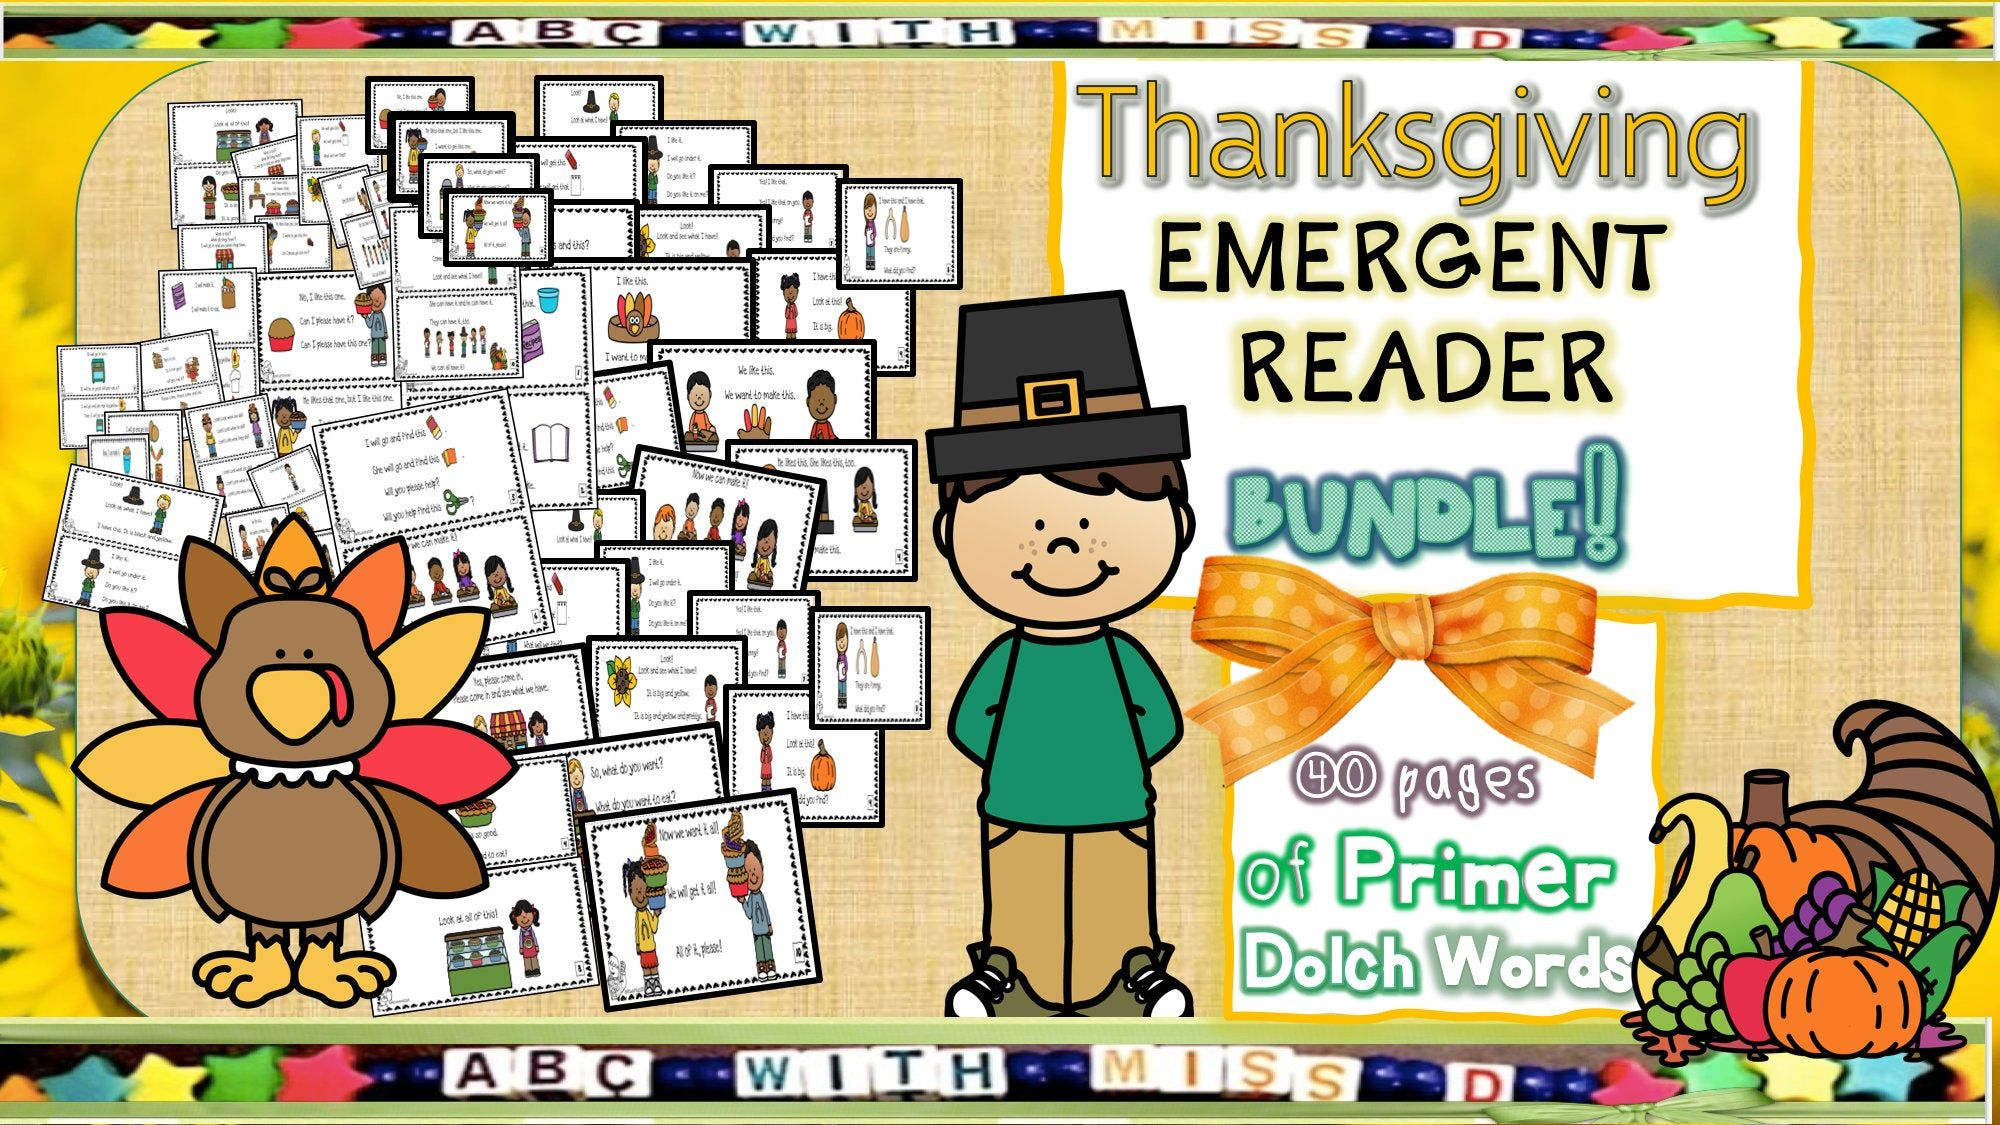 Thanksgiving Themed Emergent Reader Bundle 4 Printable